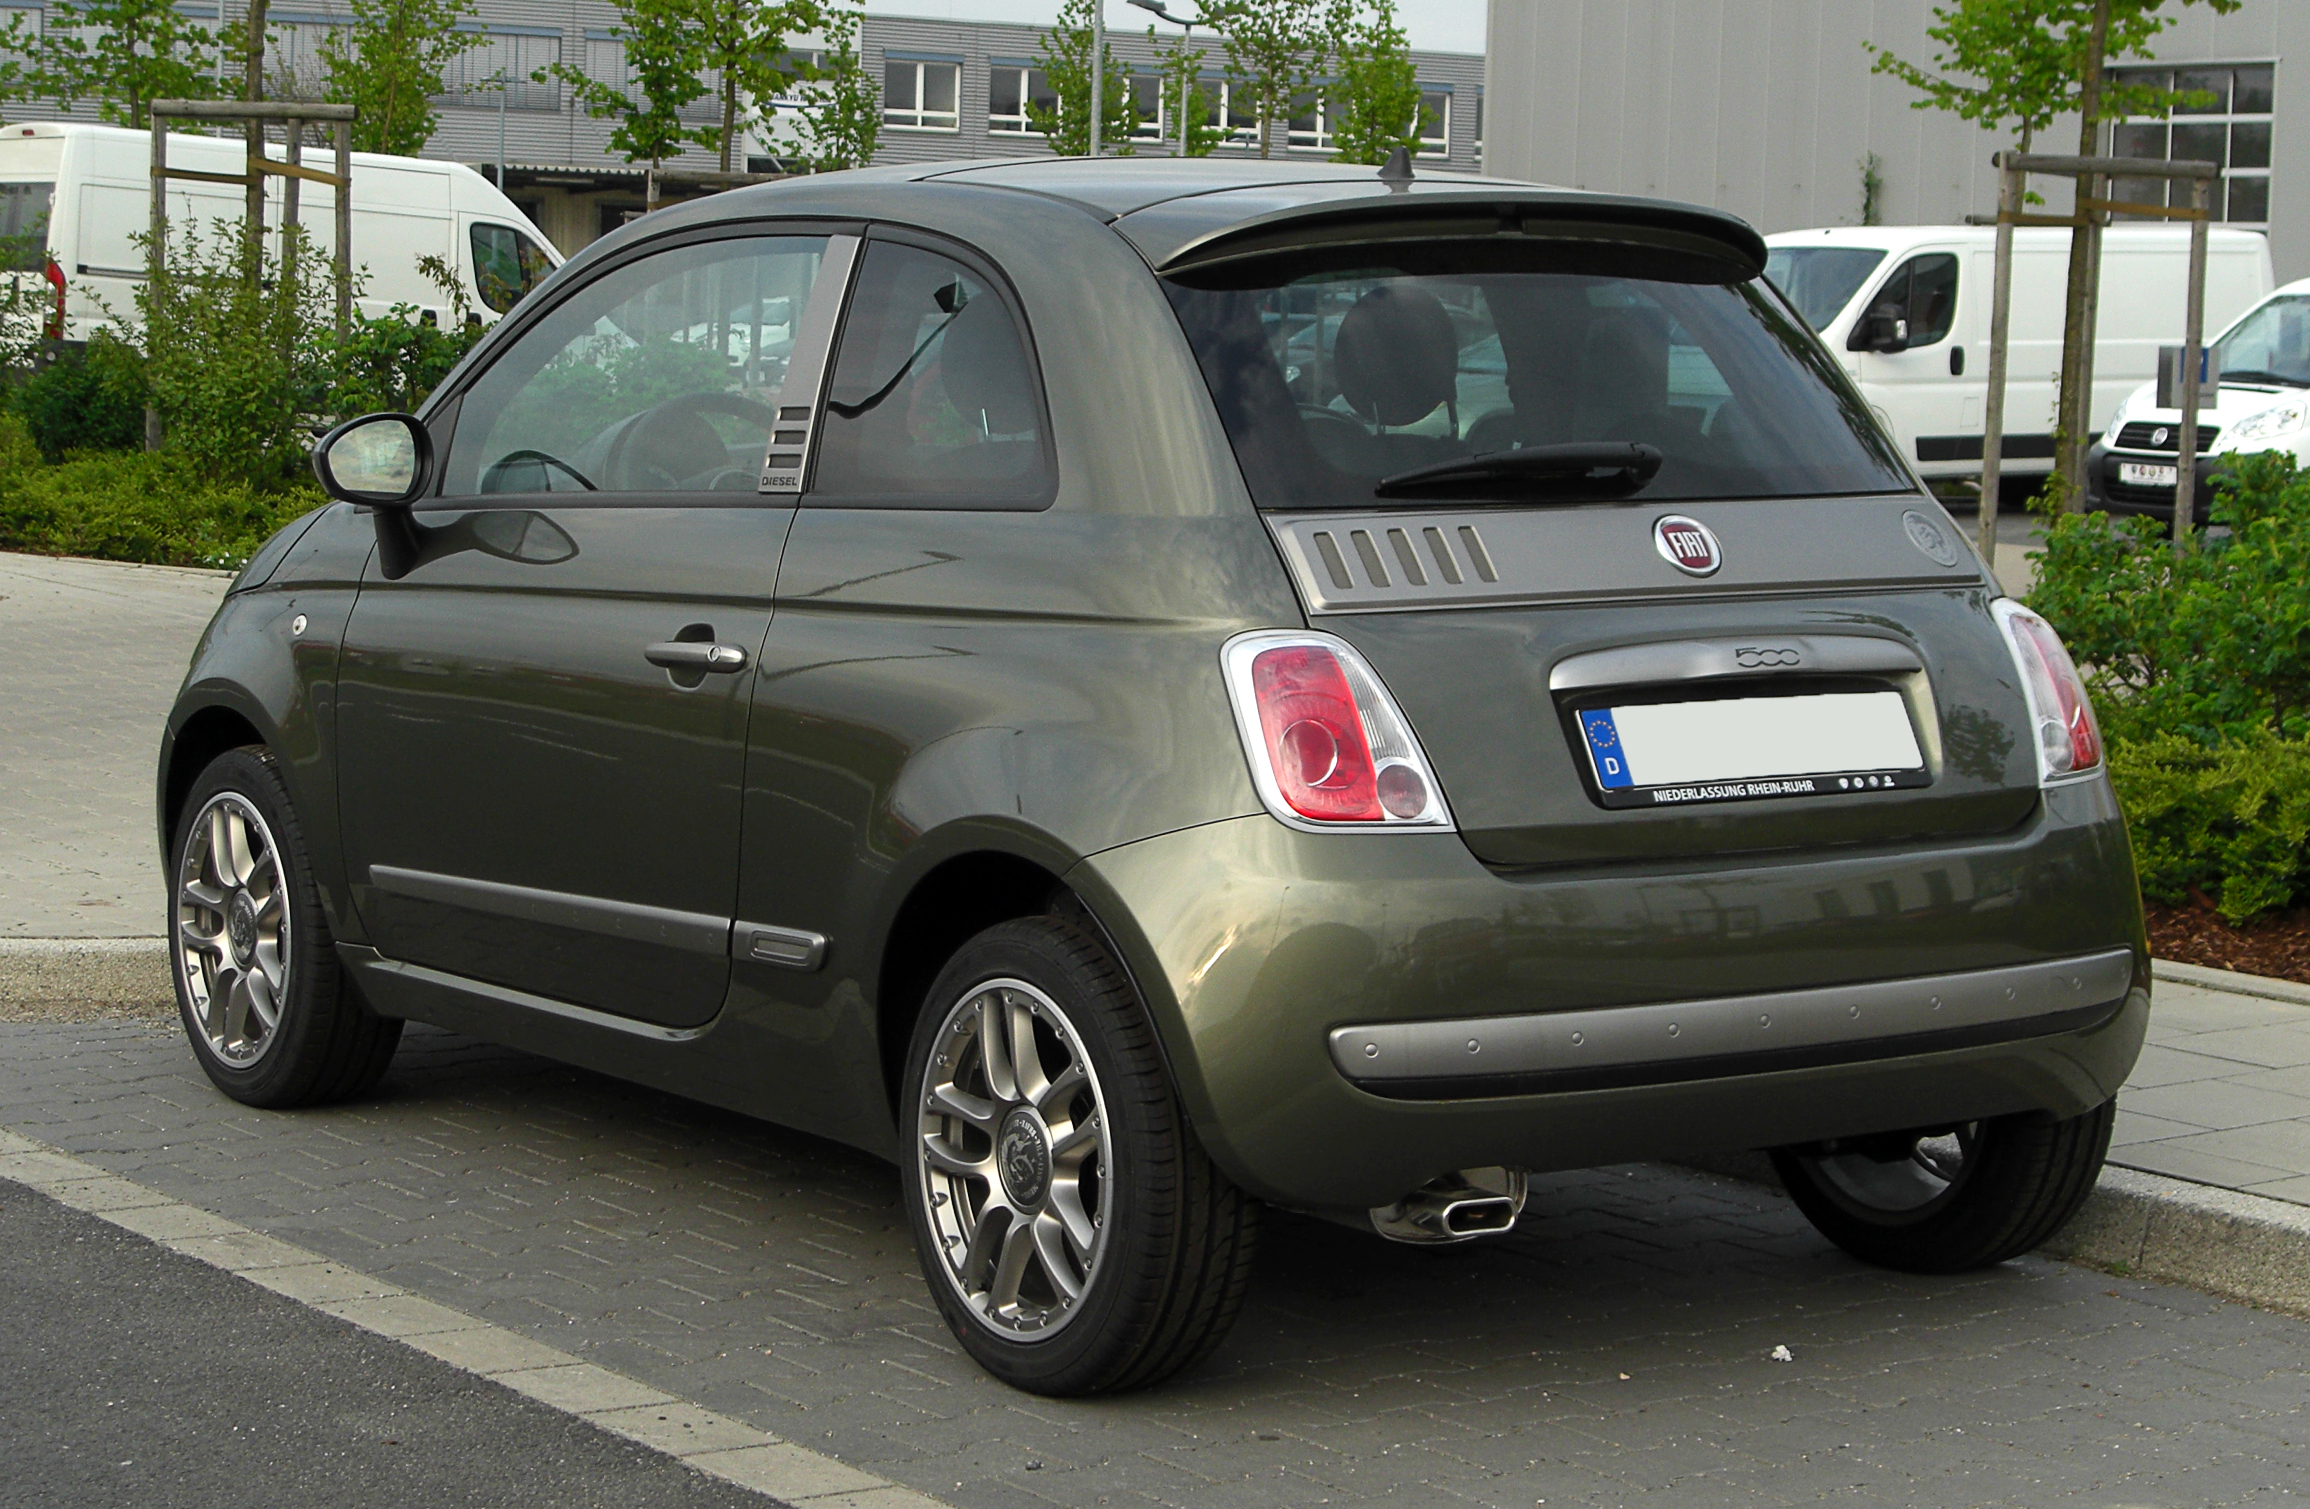 file fiat 500 1 2 8v by diesel heckansicht 16 april 2011 d wikimedia commons